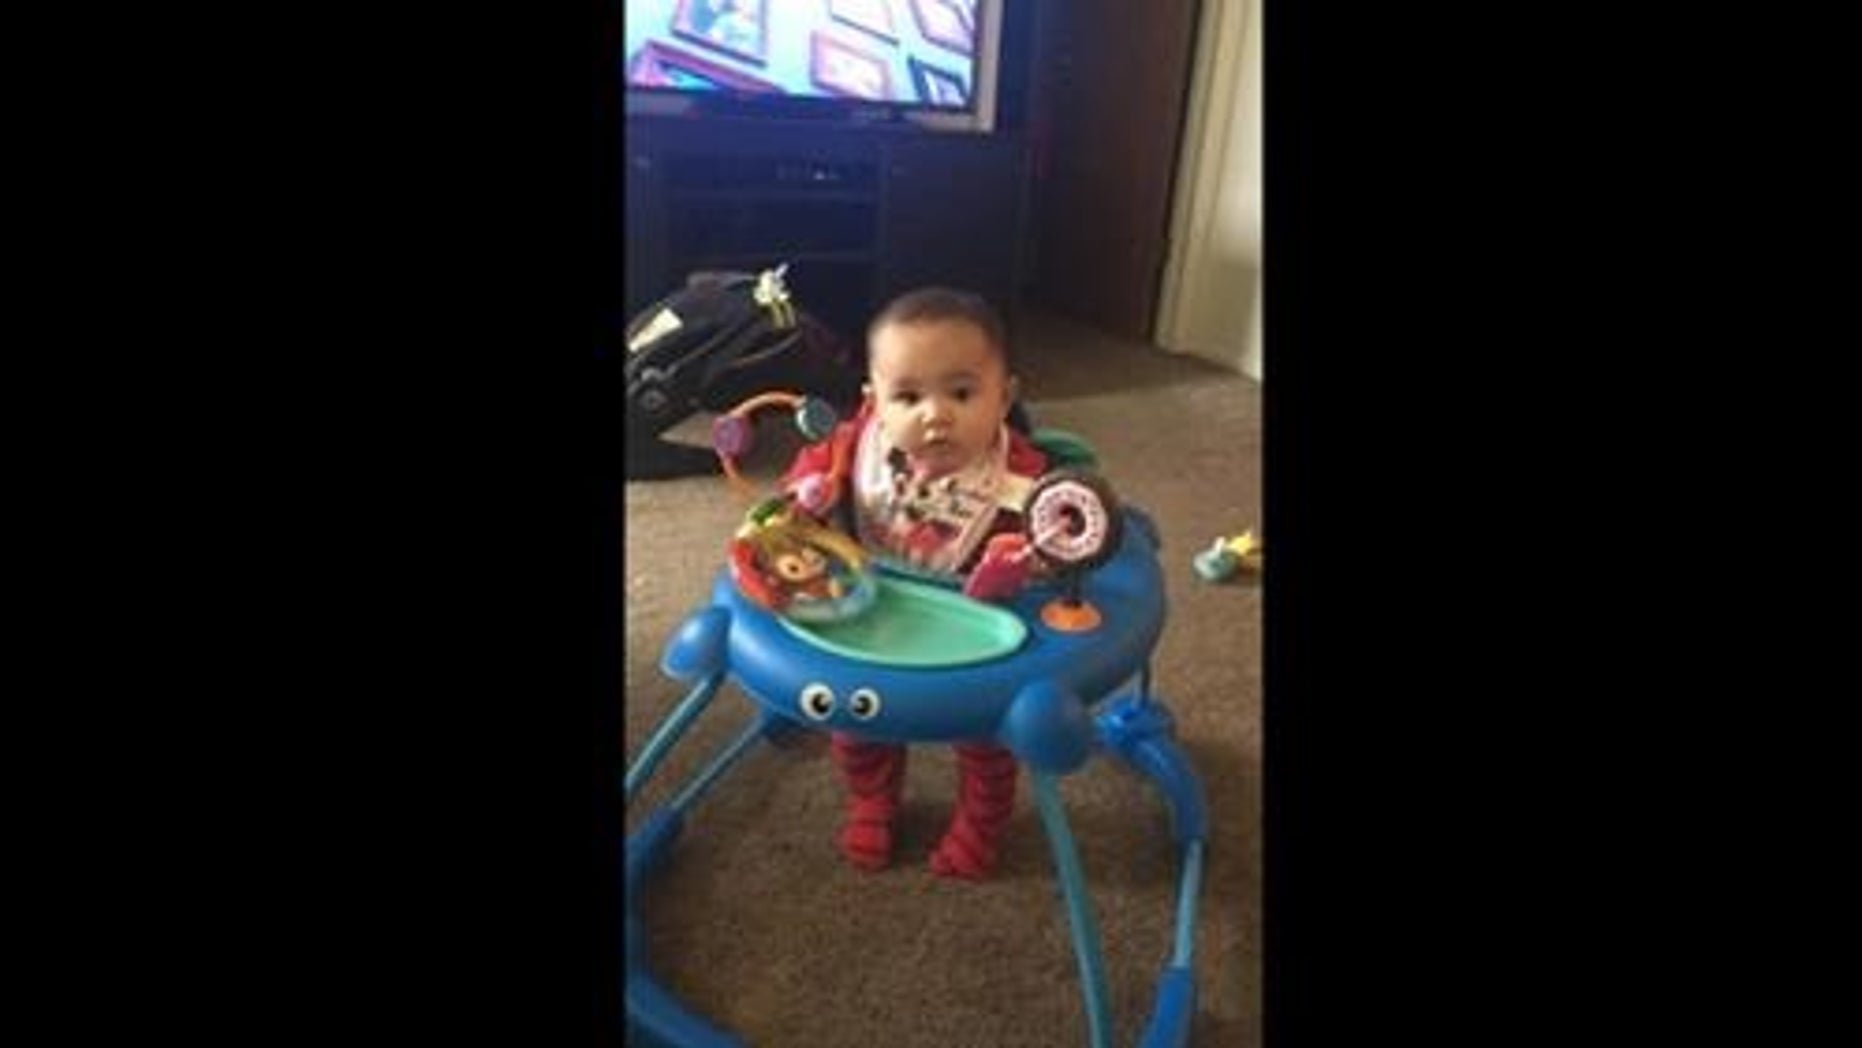 Six-month-old Avery was left in a locked daycare, his mother said.